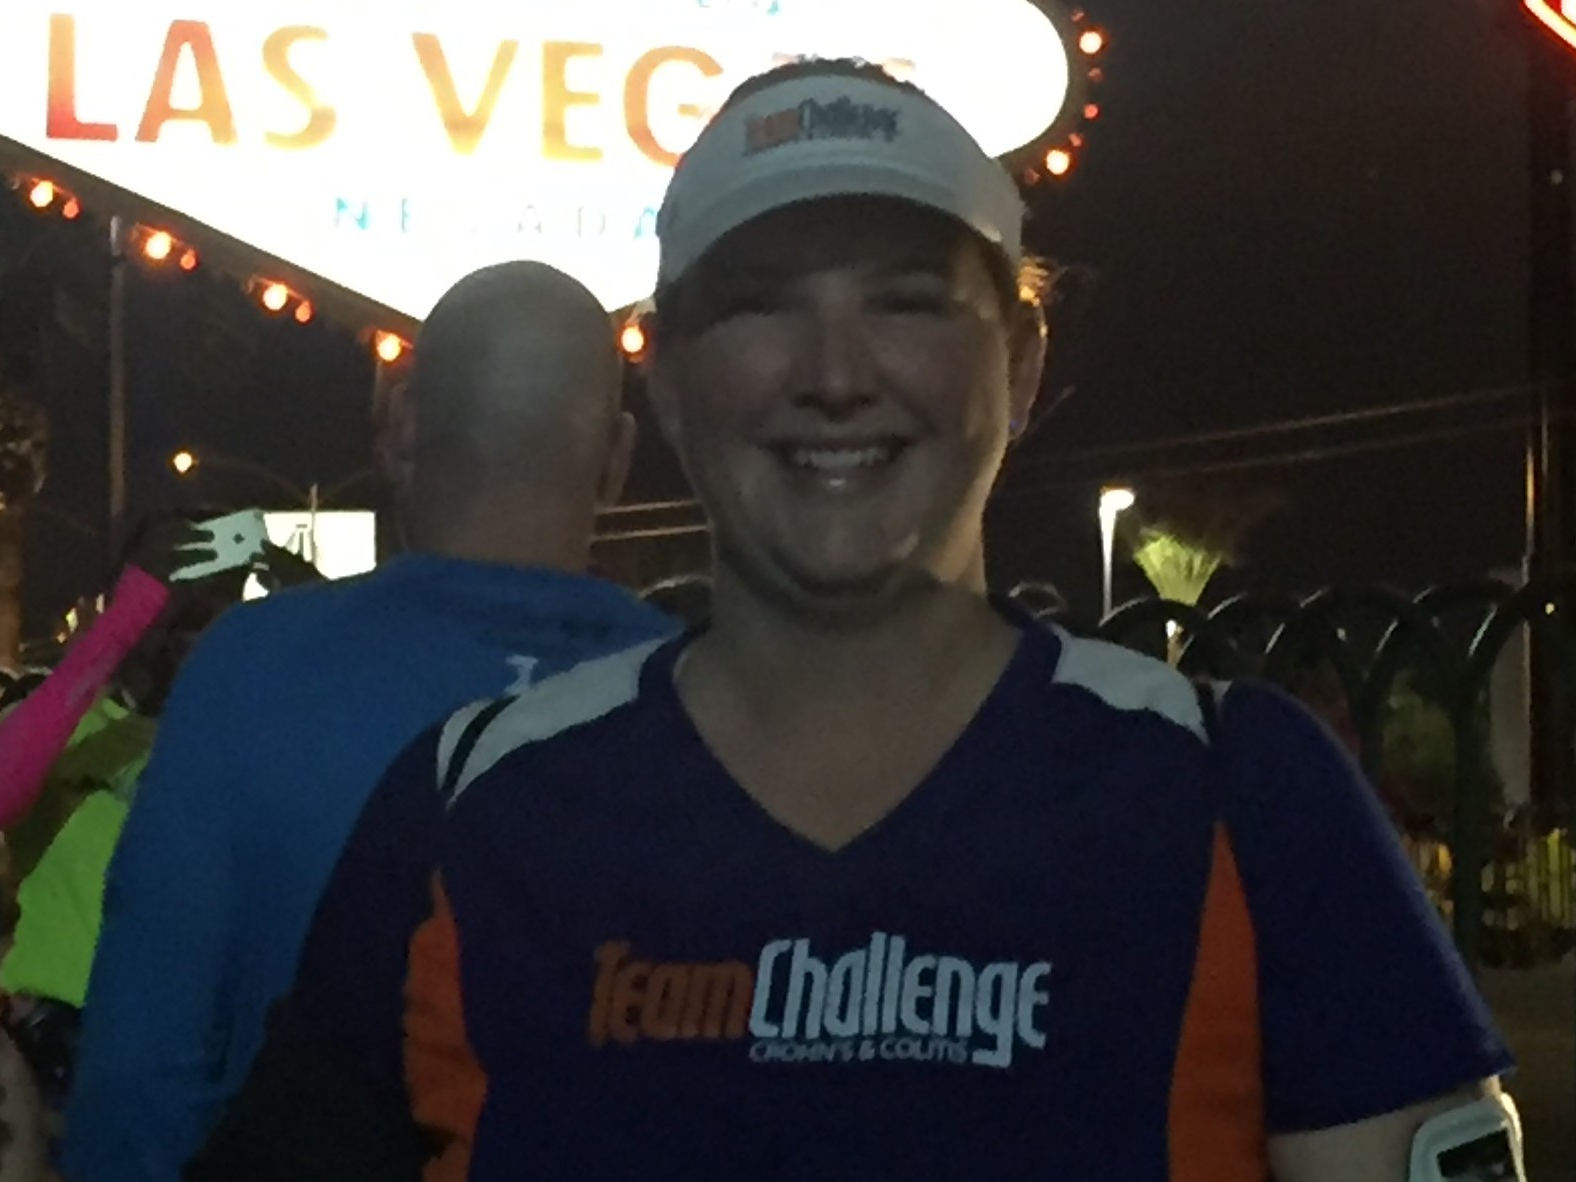 Kirstie's Team Challenge Race to Support the Crohn's & Colitis Foundation